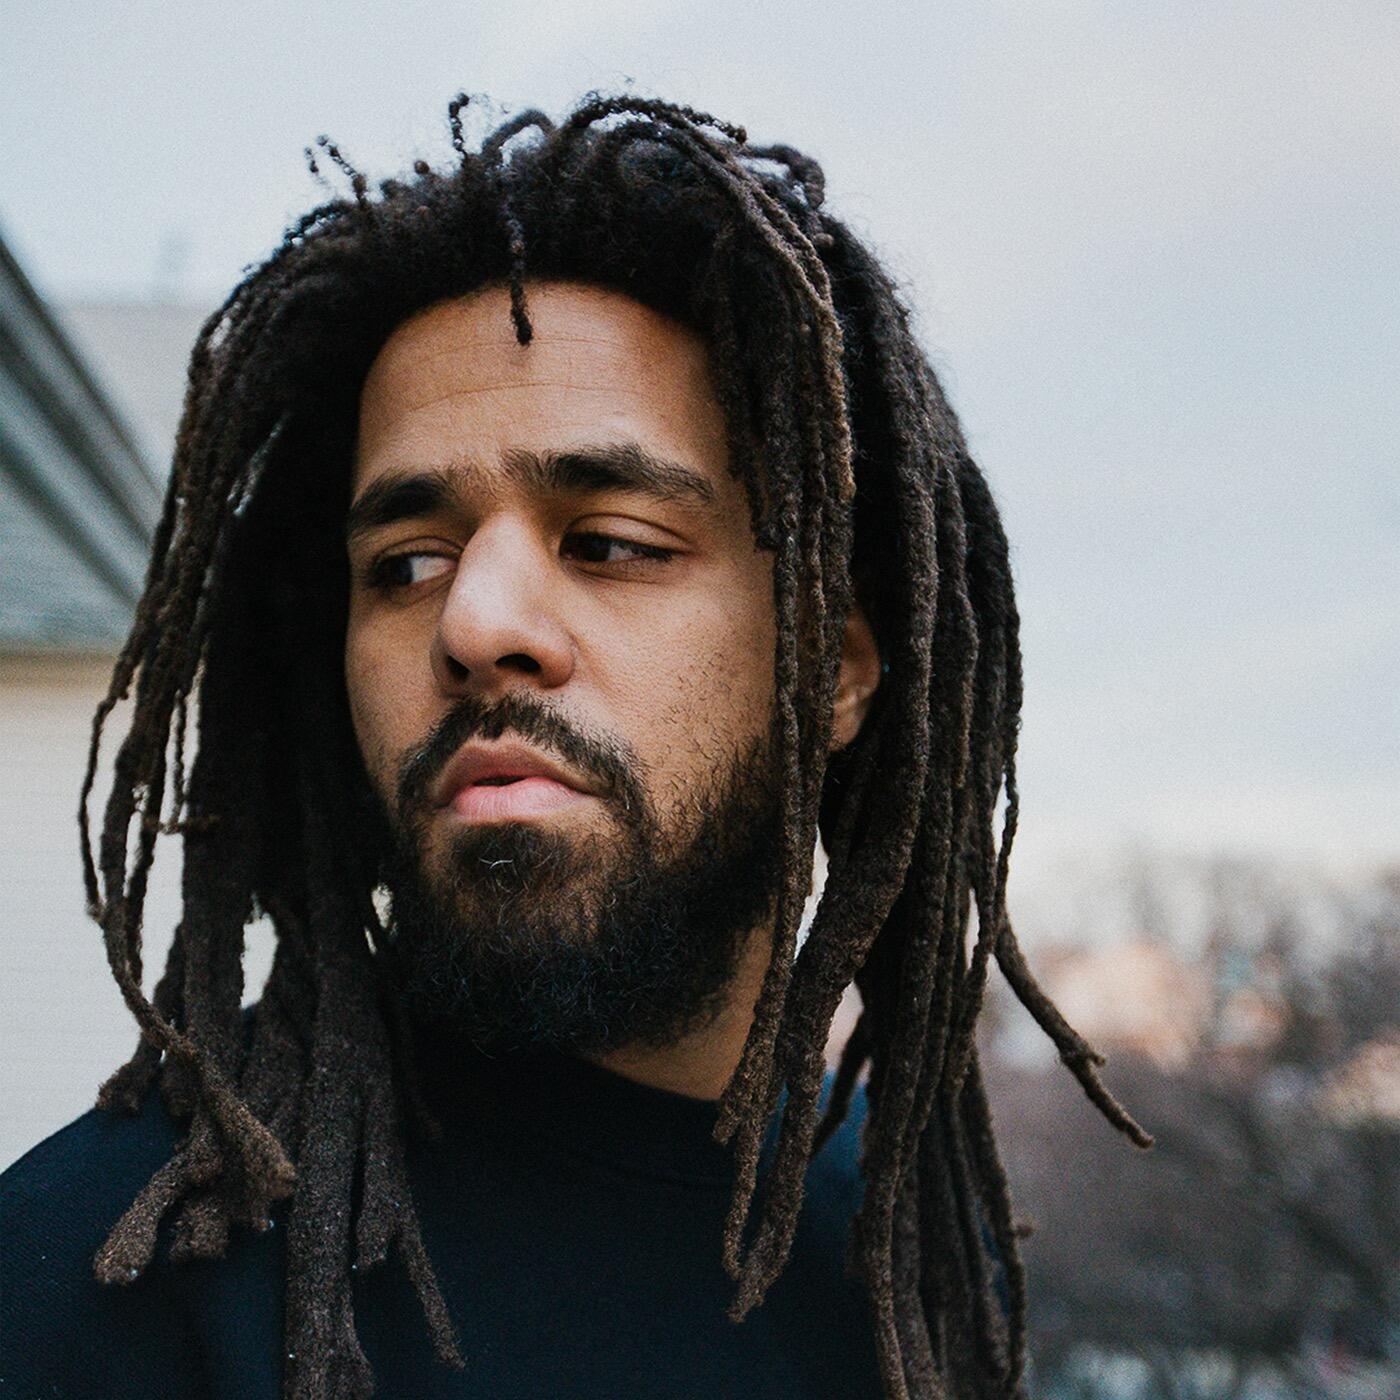 J. Cole Radio: Listen to Free Music & Get The Latest Info